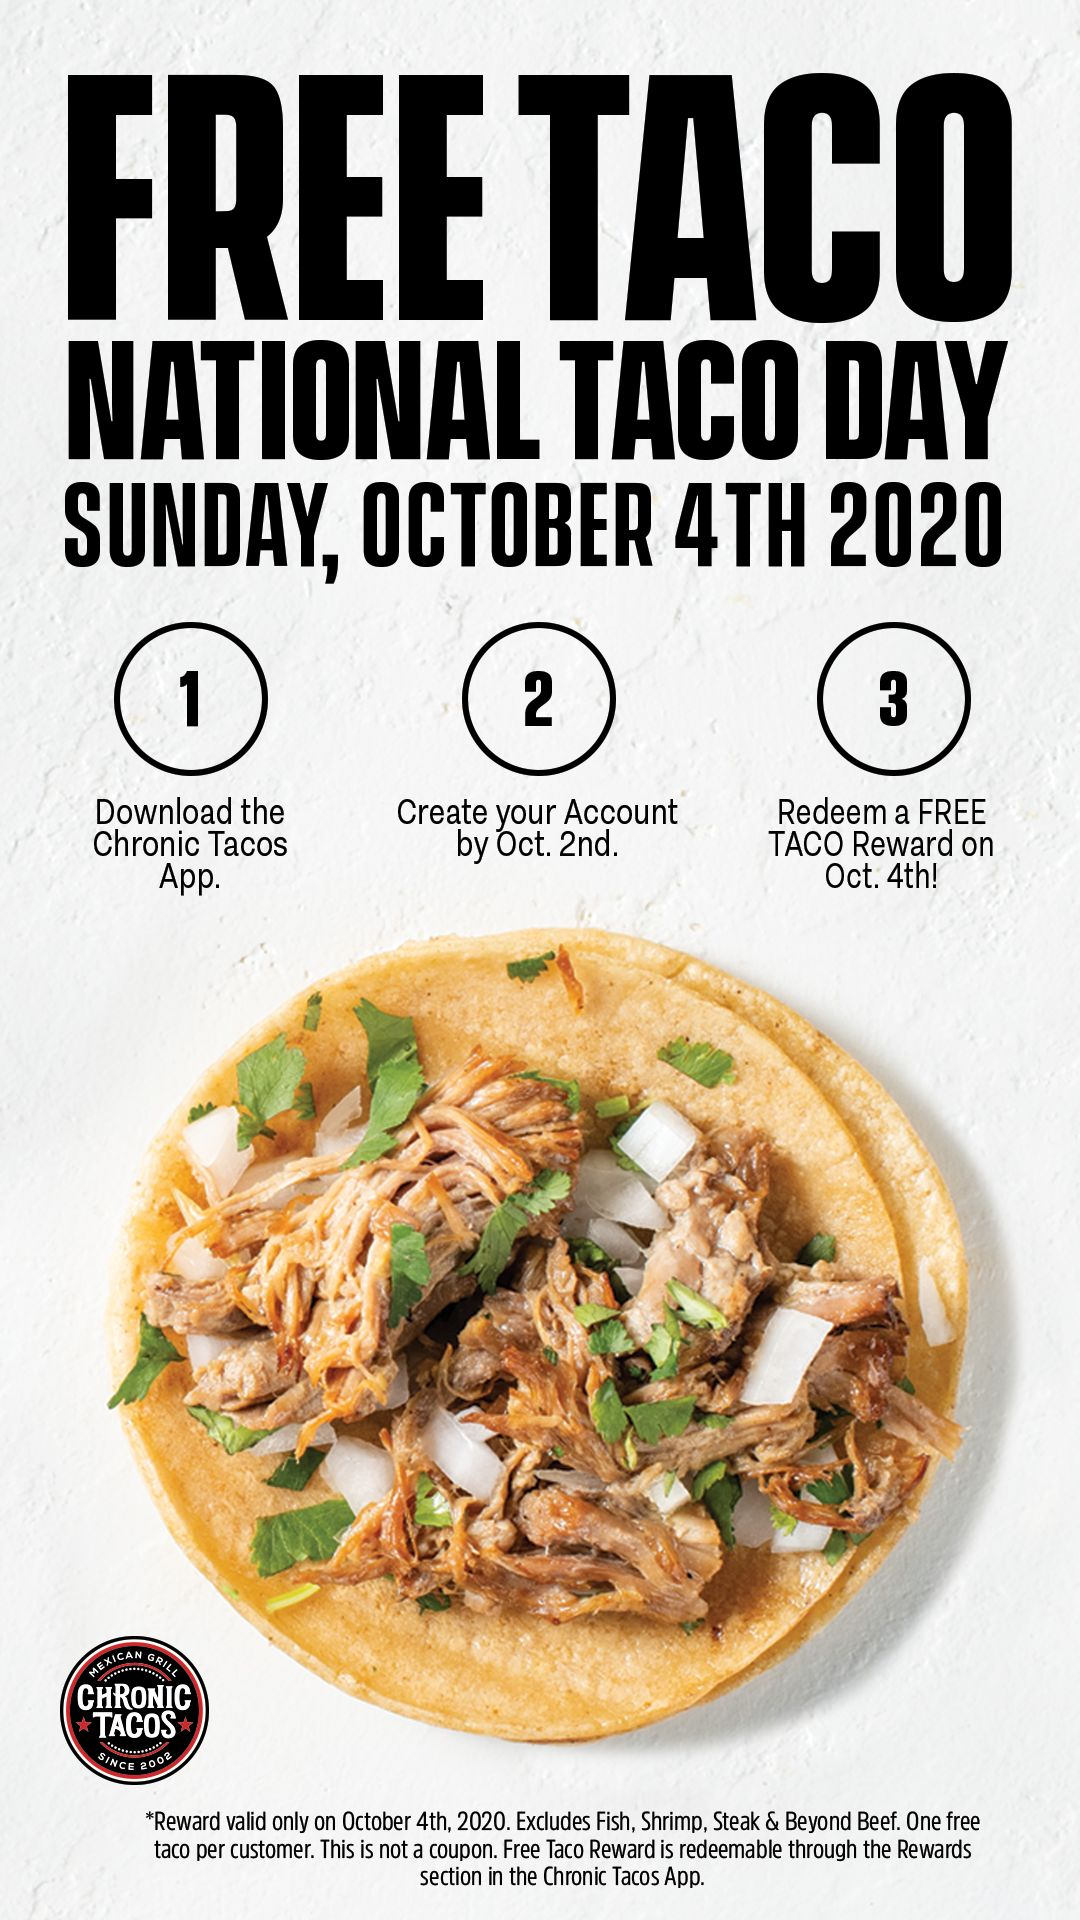 Chronic Tacos Gives Away Free Tacos for National Taco Day Oct. 4